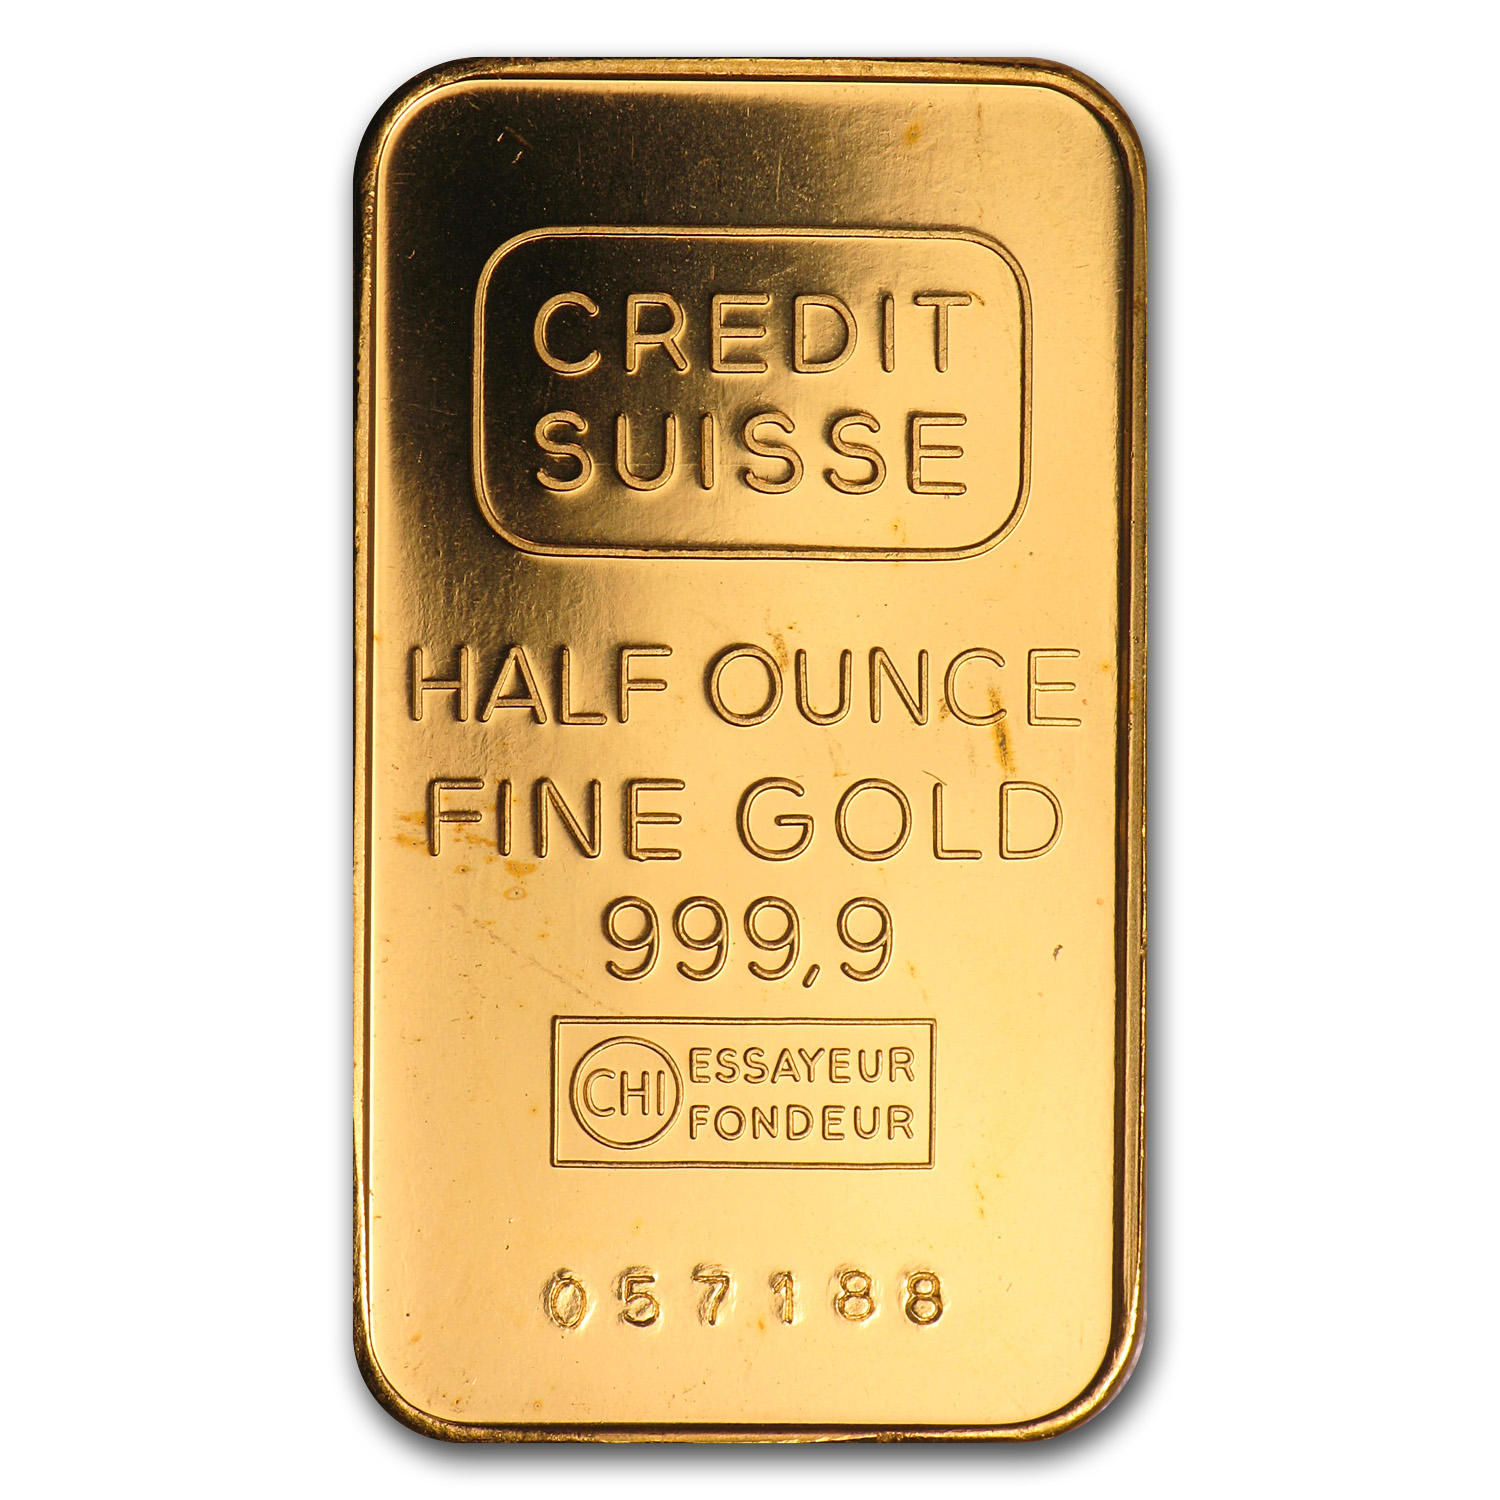 1/2 oz Gold Bars - Credit Suisse